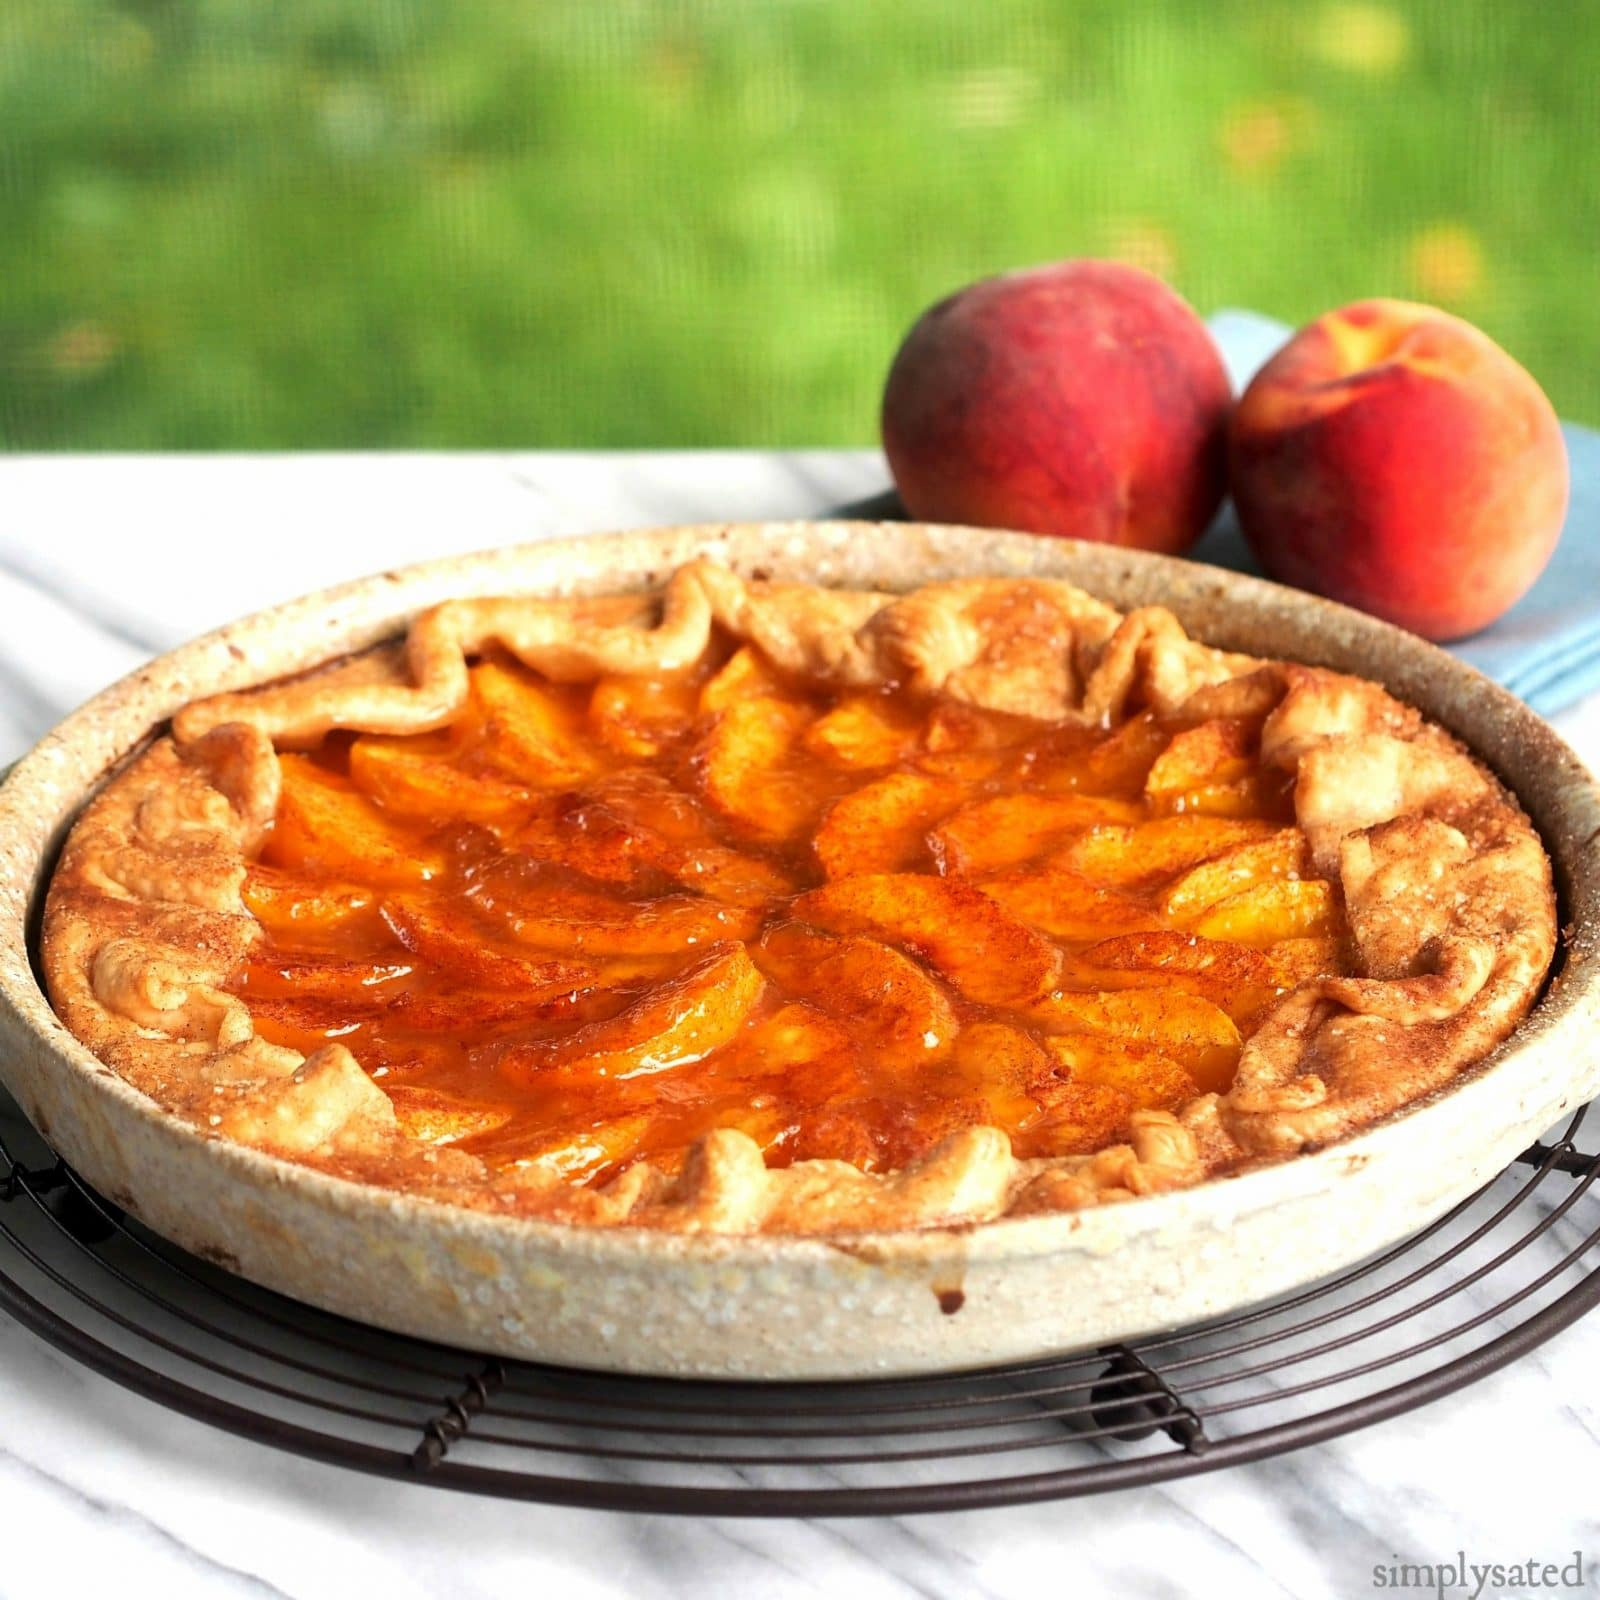 Rustic peach tart simply sated for Easy apple dessert recipes with few ingredients